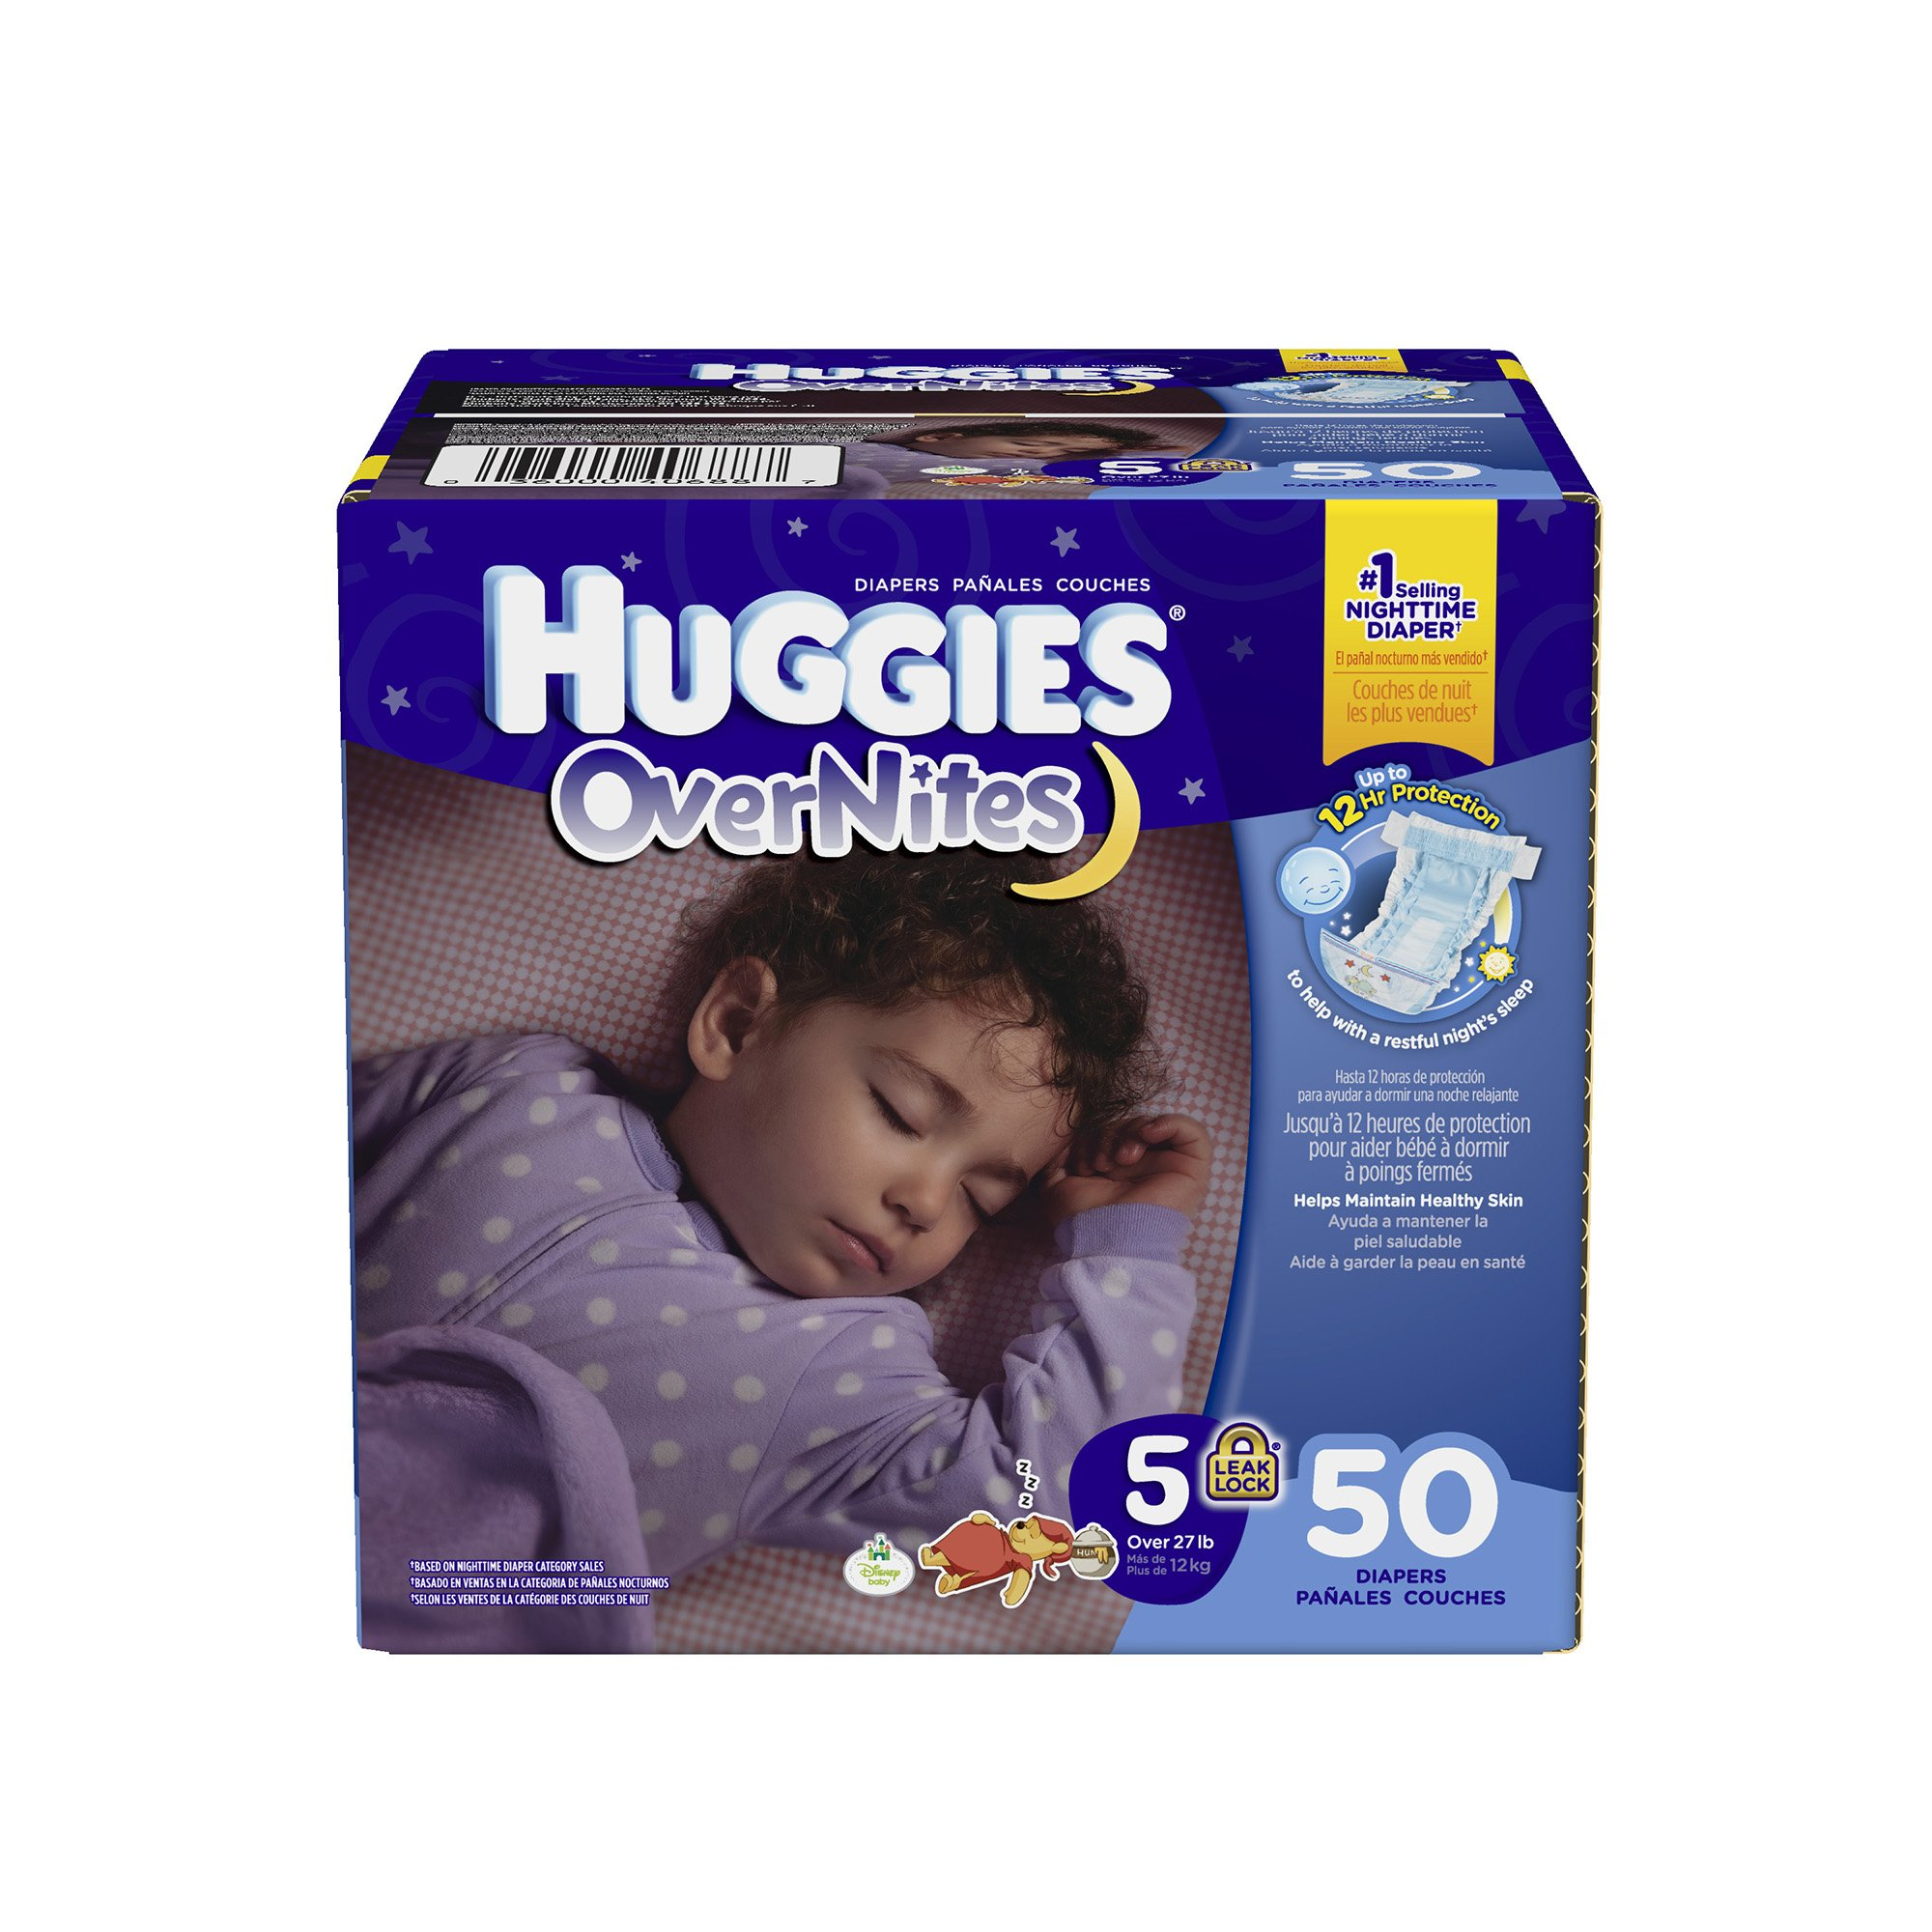 Shop for huggies diapers size 5 online at Target. Free shipping & returns and save 5% every day with your Target REDcard.